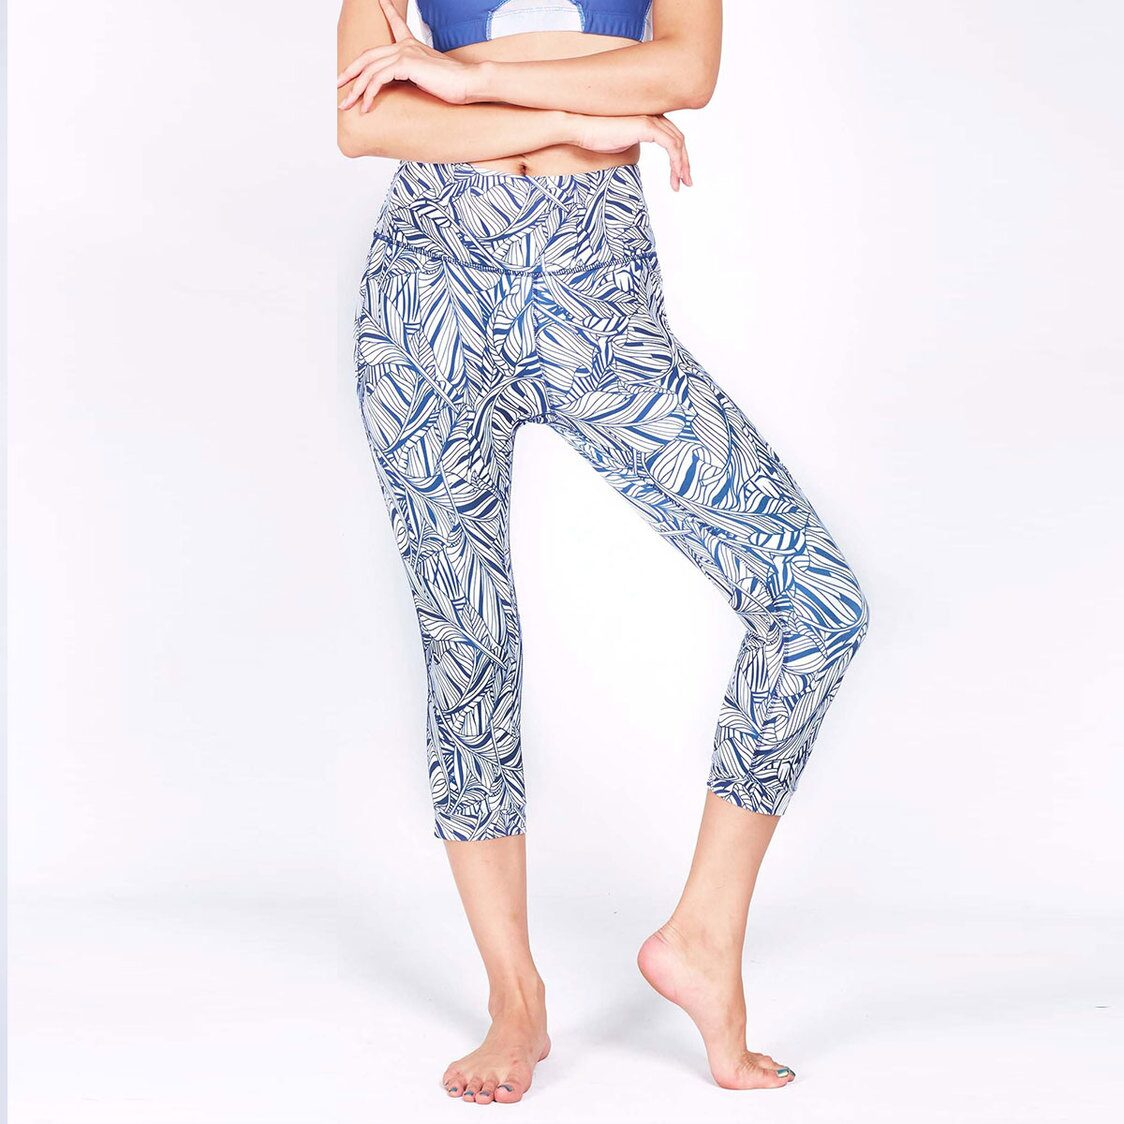 DEFINE 34 Capris with Keeperband in Liberty Print